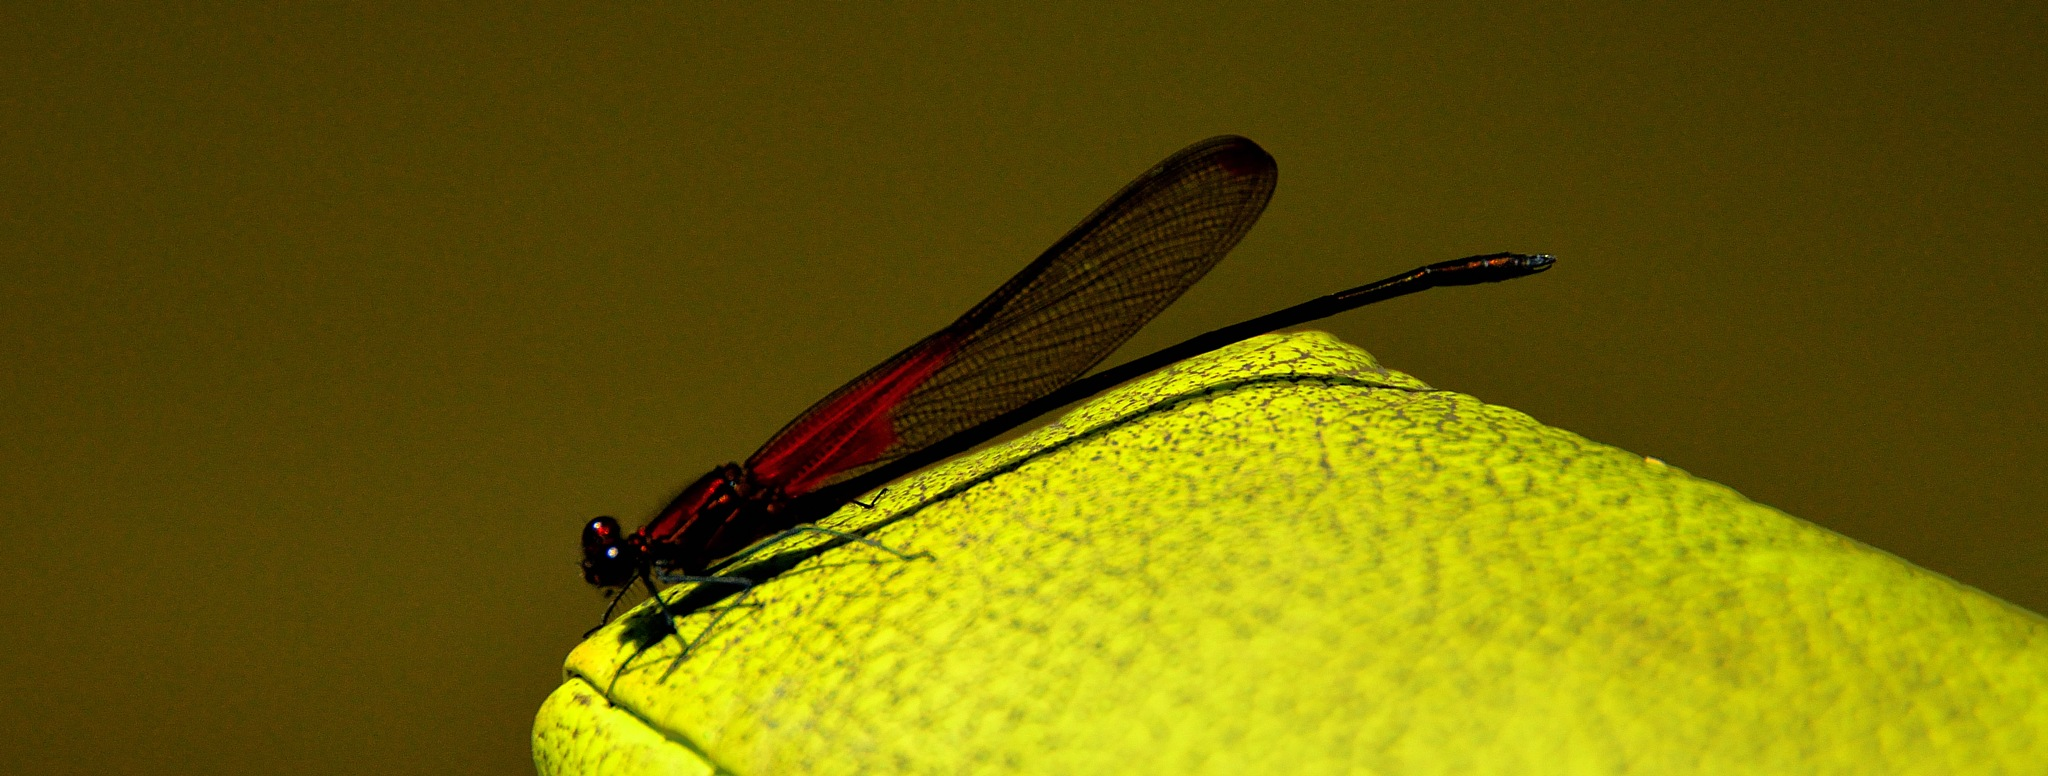 Dragonfly by CaballerodeGracia